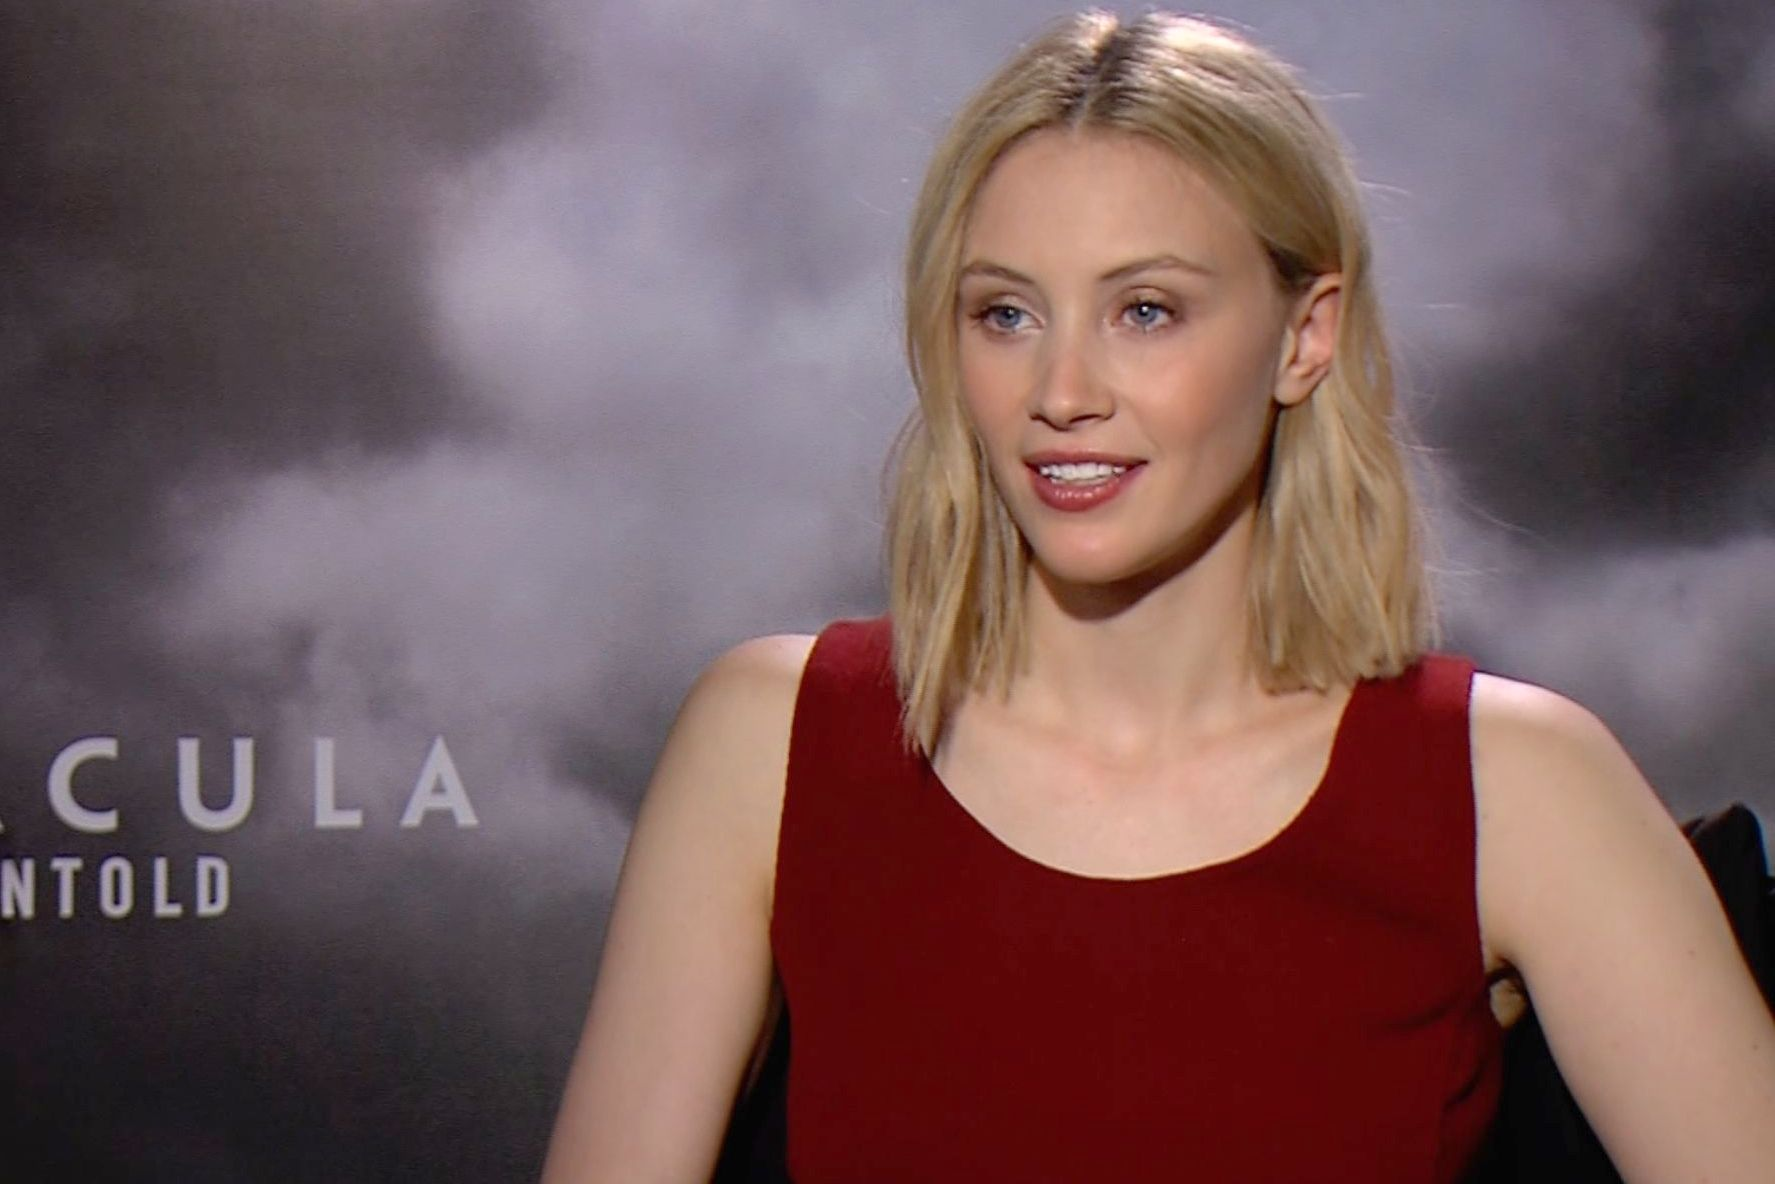 Sarah Gadons Background